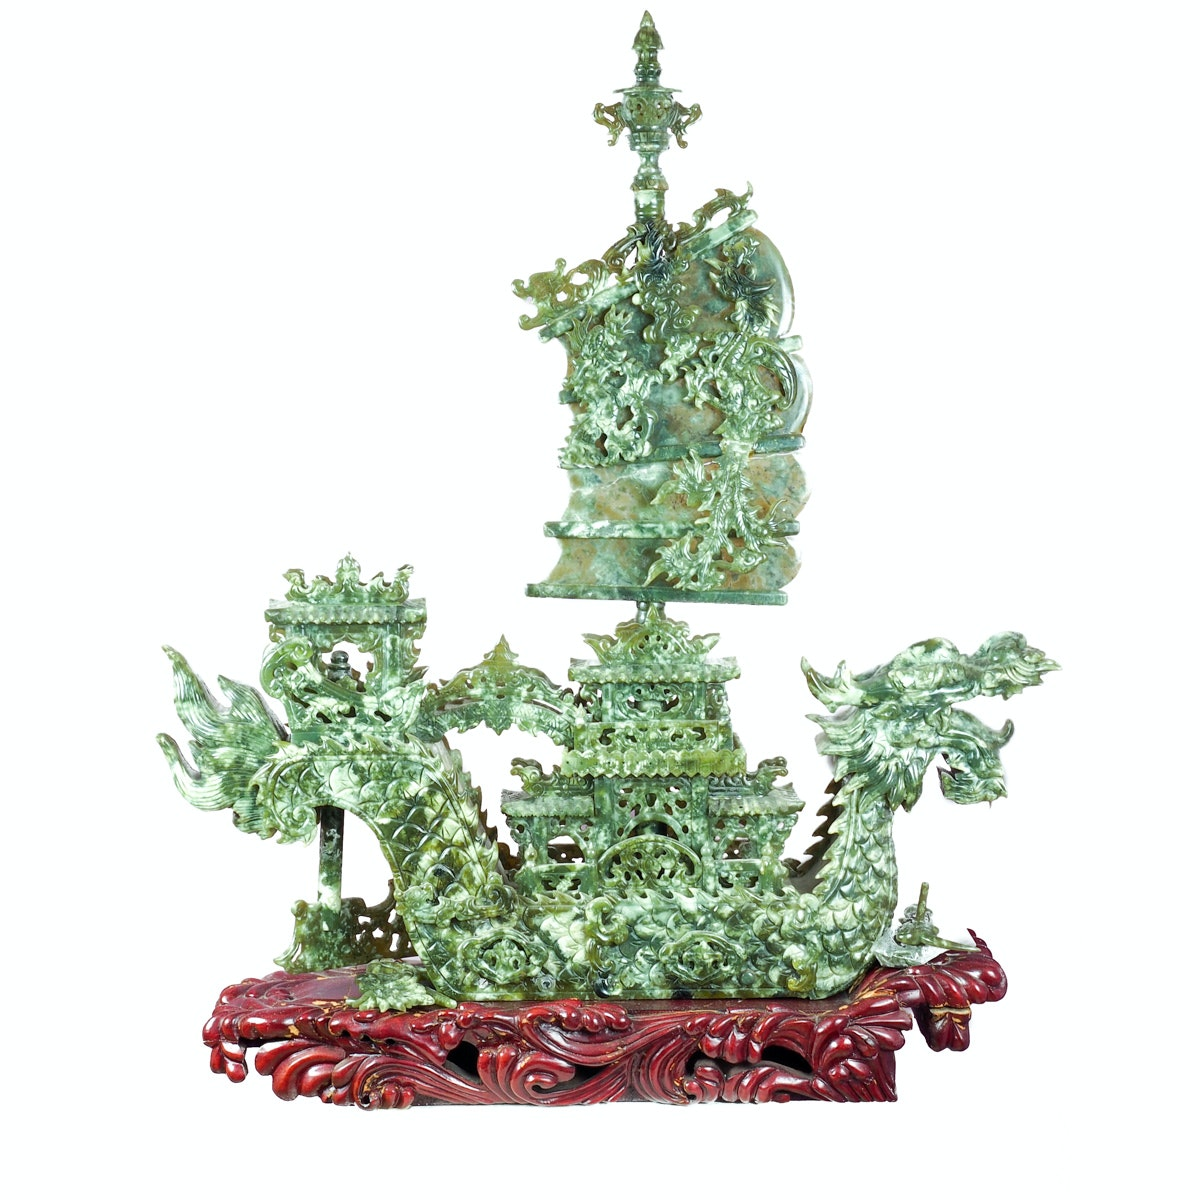 Chinese Carved Serpentine Sculpture Of a Dragon Ship